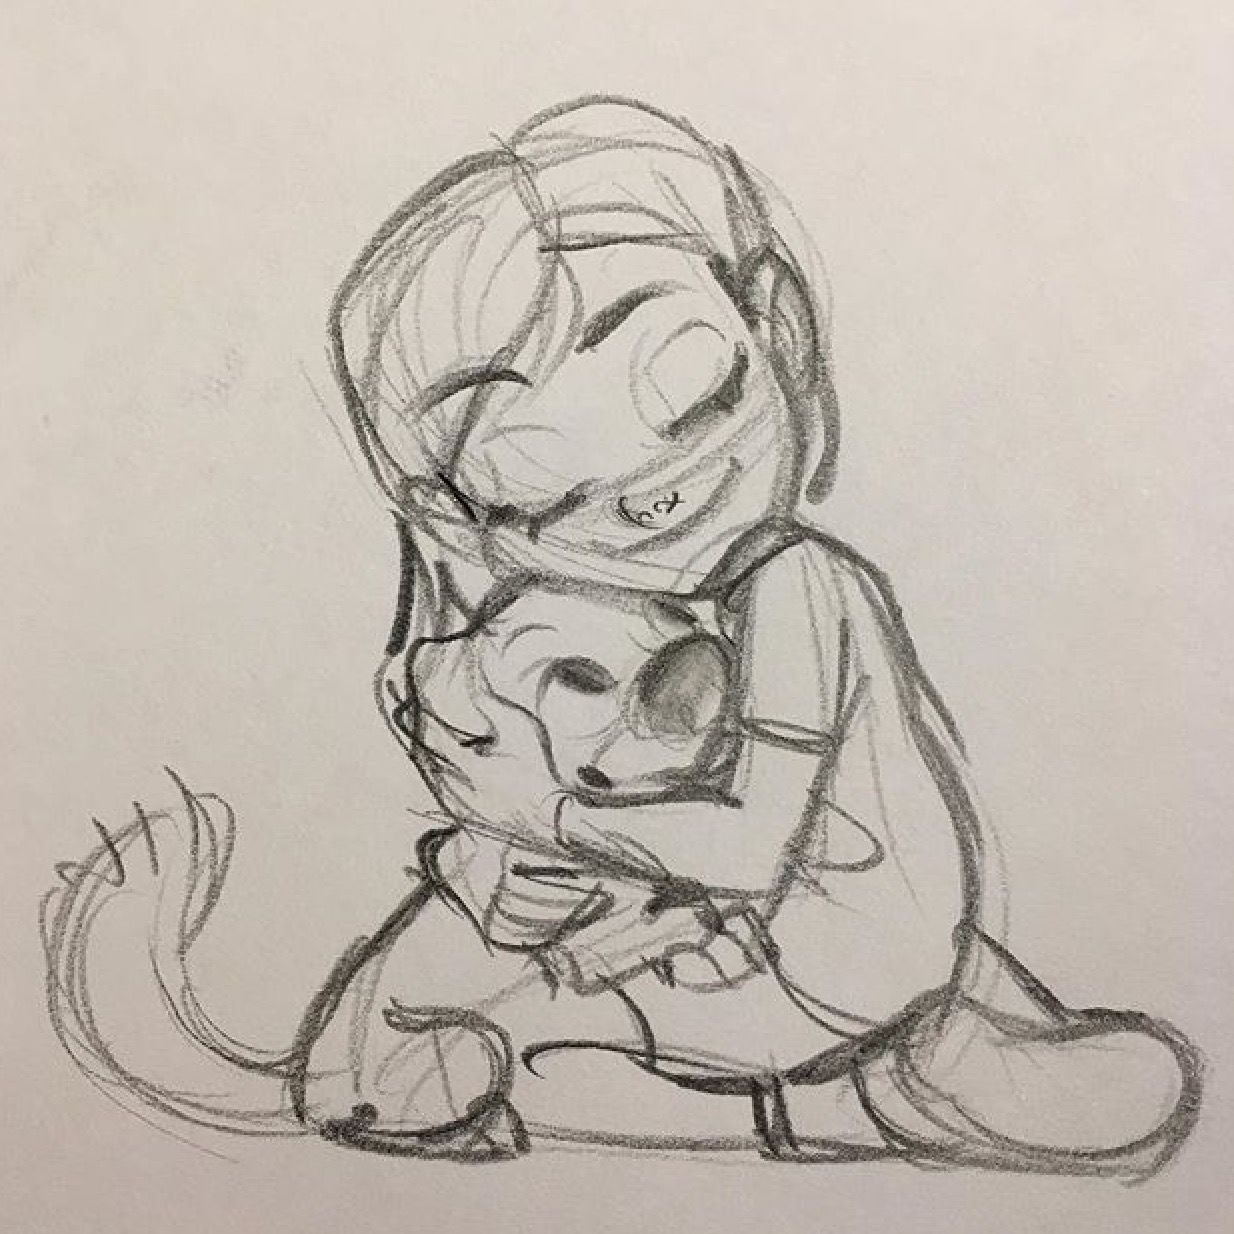 Penny and bolt sketch